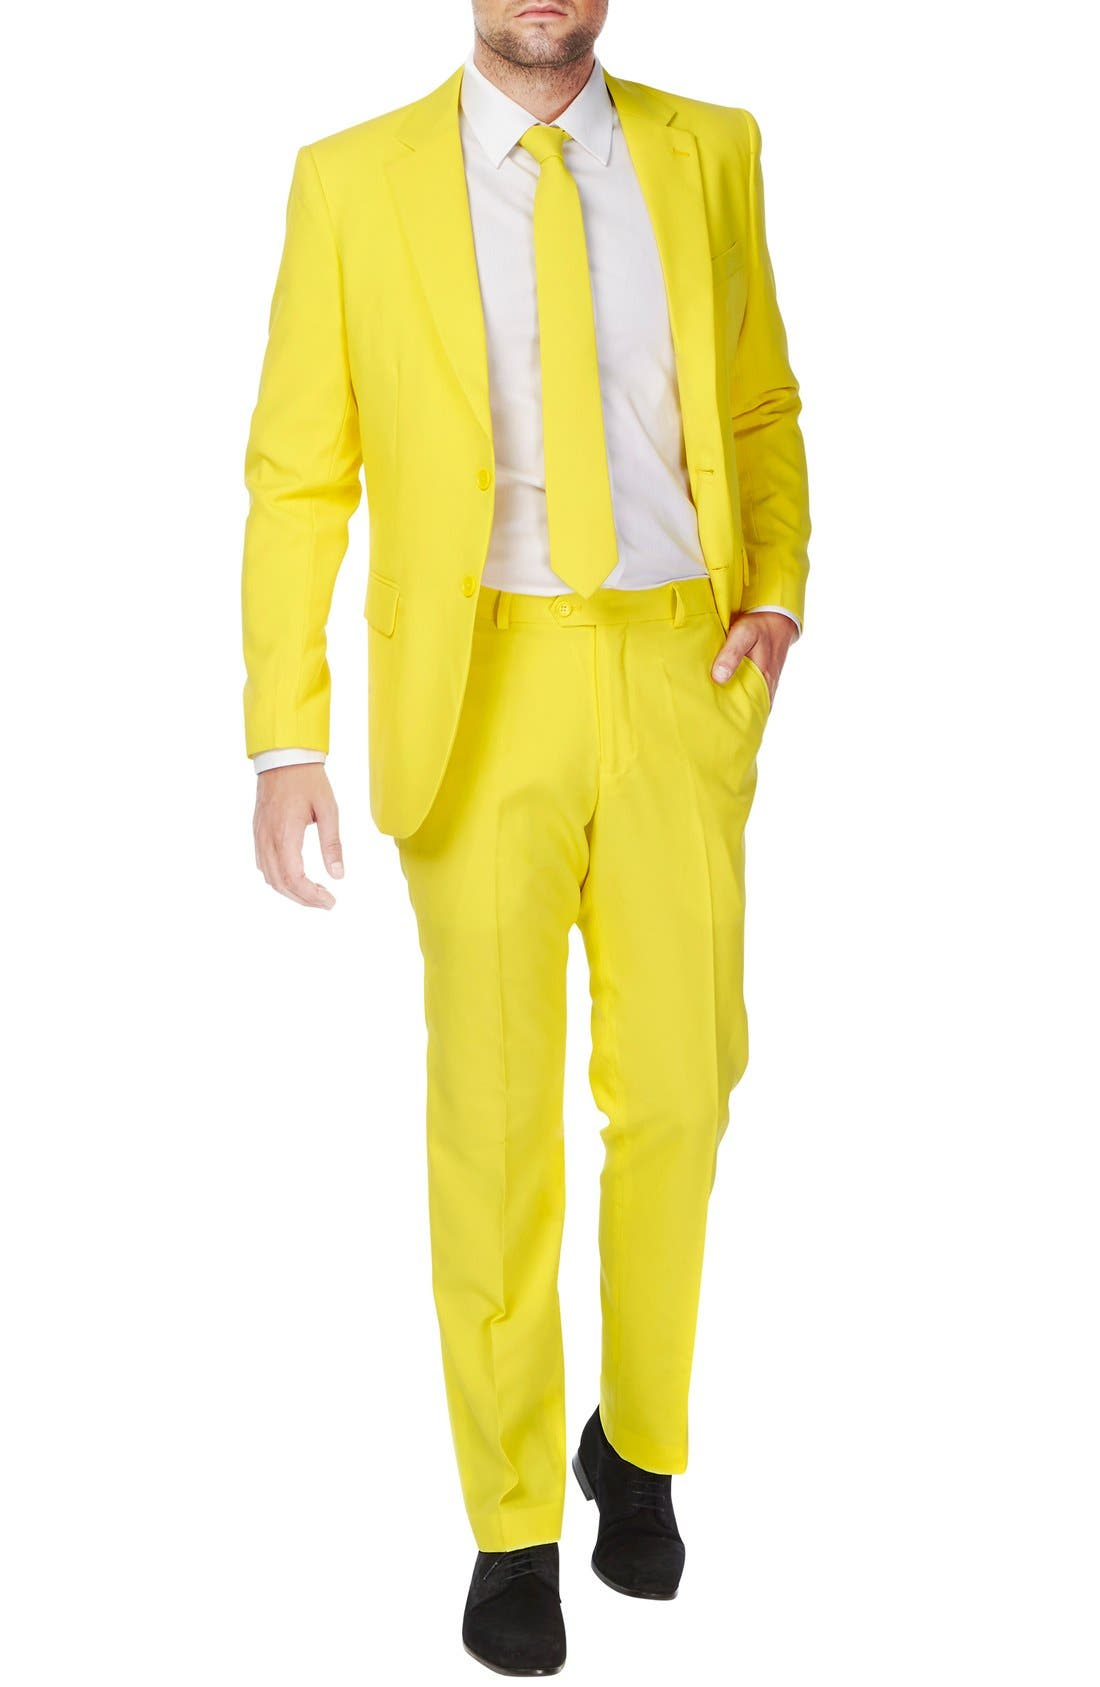 'Yellow Fellow' Trim Fit Two-Piece Suit with Tie,                         Main,                         color, Yellow